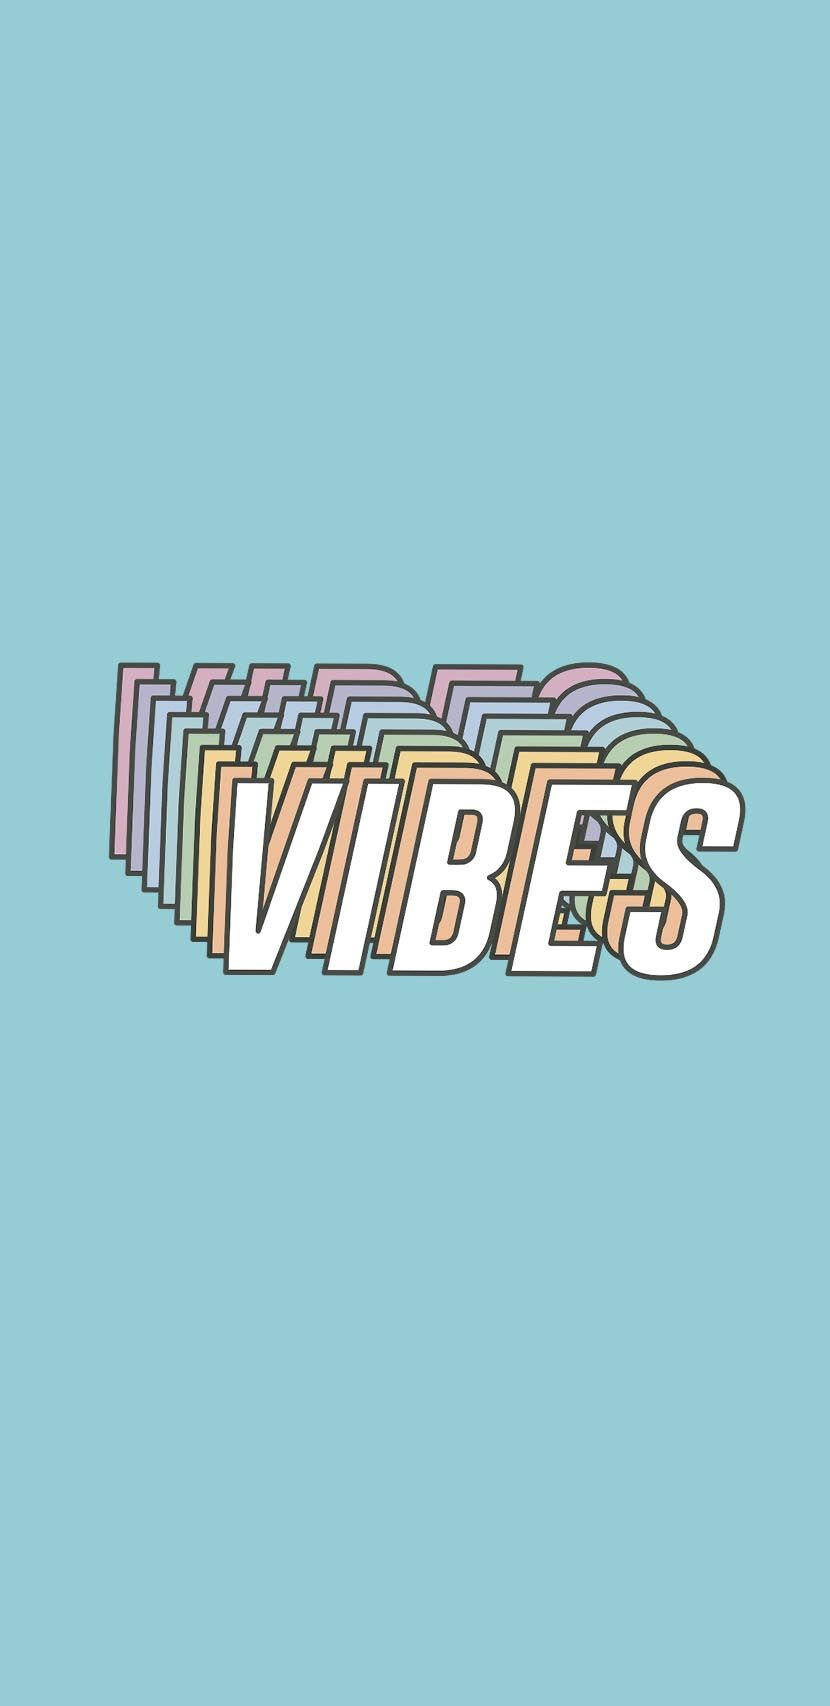 vibes, beach vibes, good vibes, motivational quote, quote